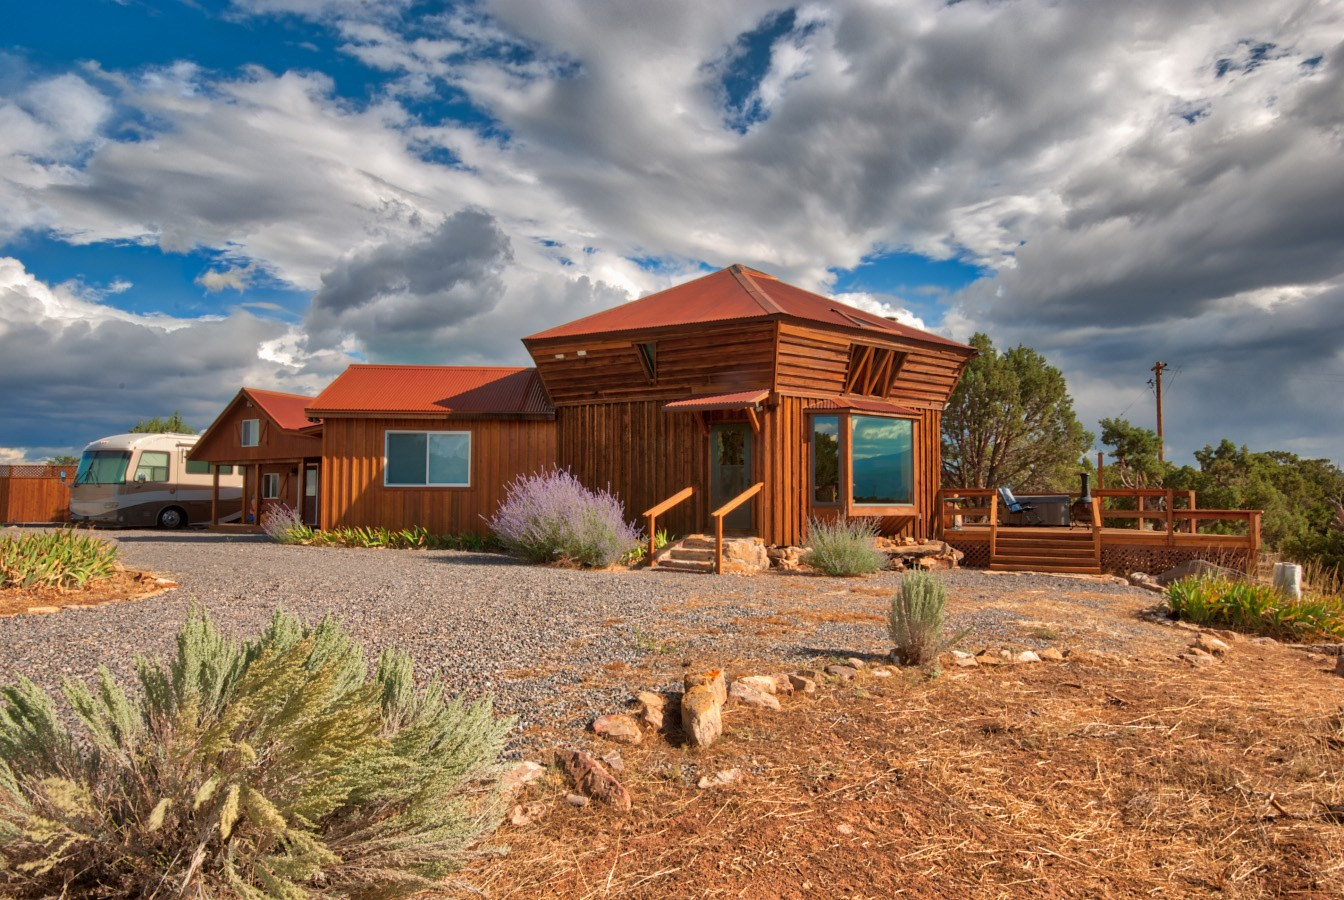 40 acres of secluded bliss with mountain views and privacy